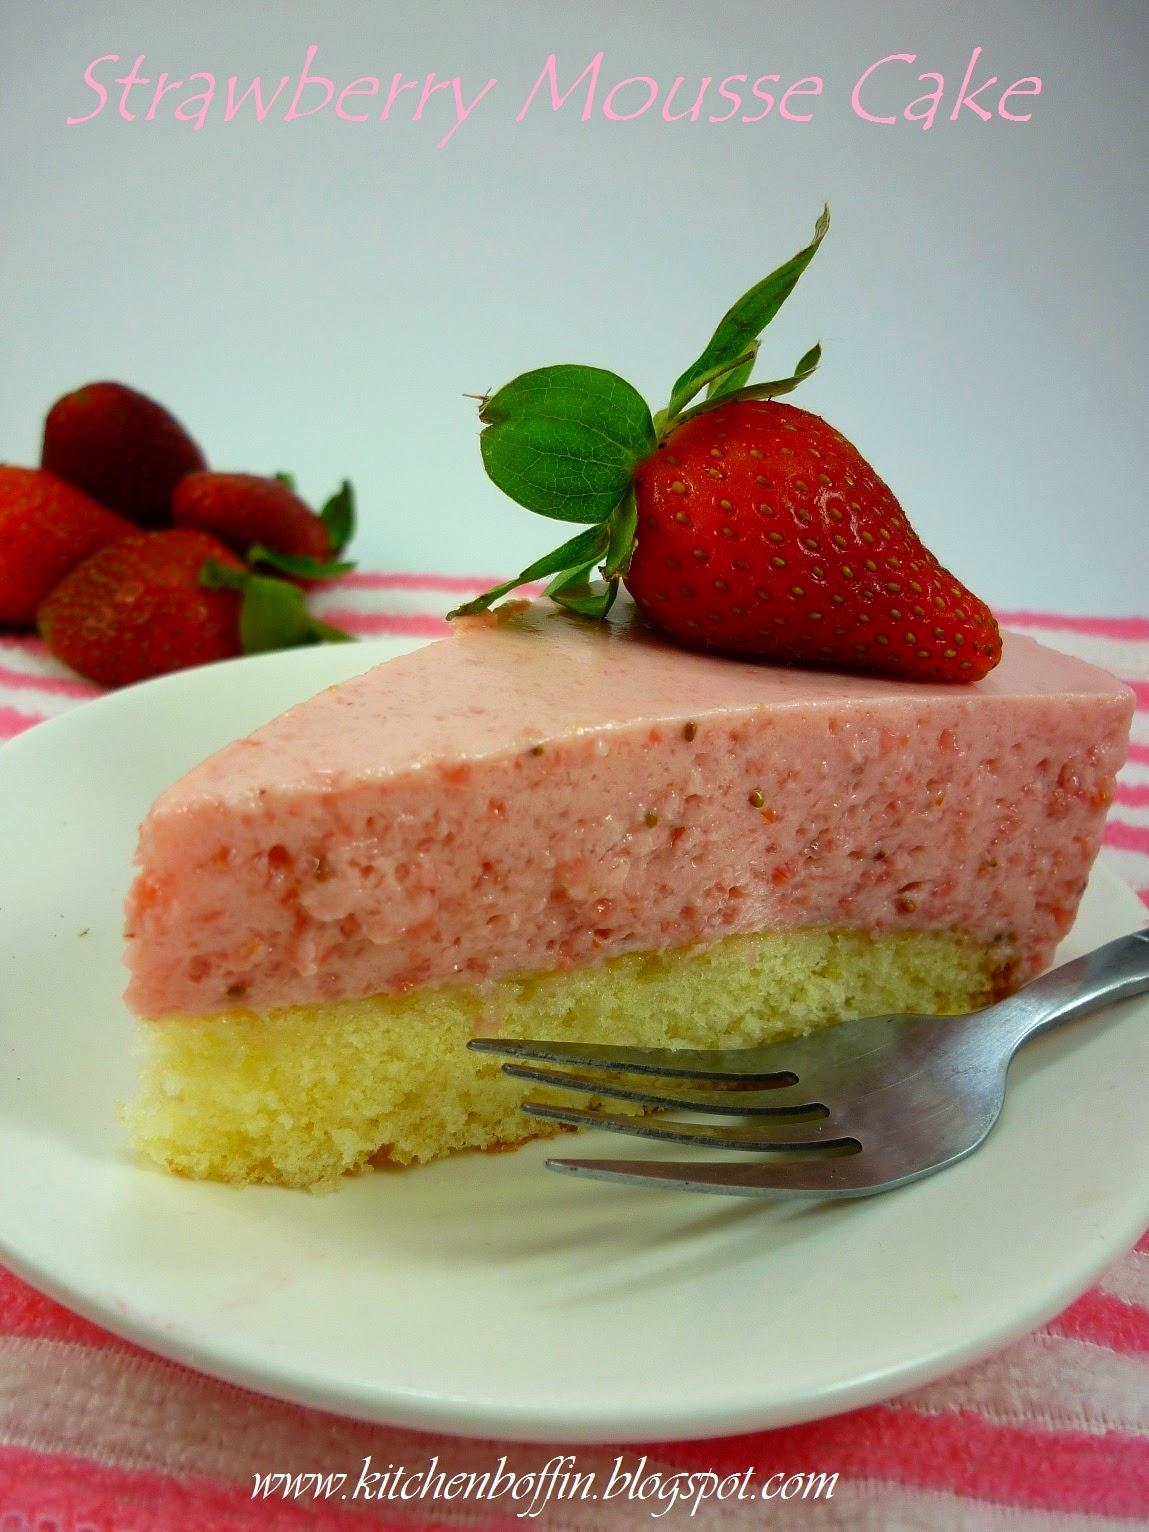 strawberry mousse cake recipe ingredients cake one 9 vanilla cake